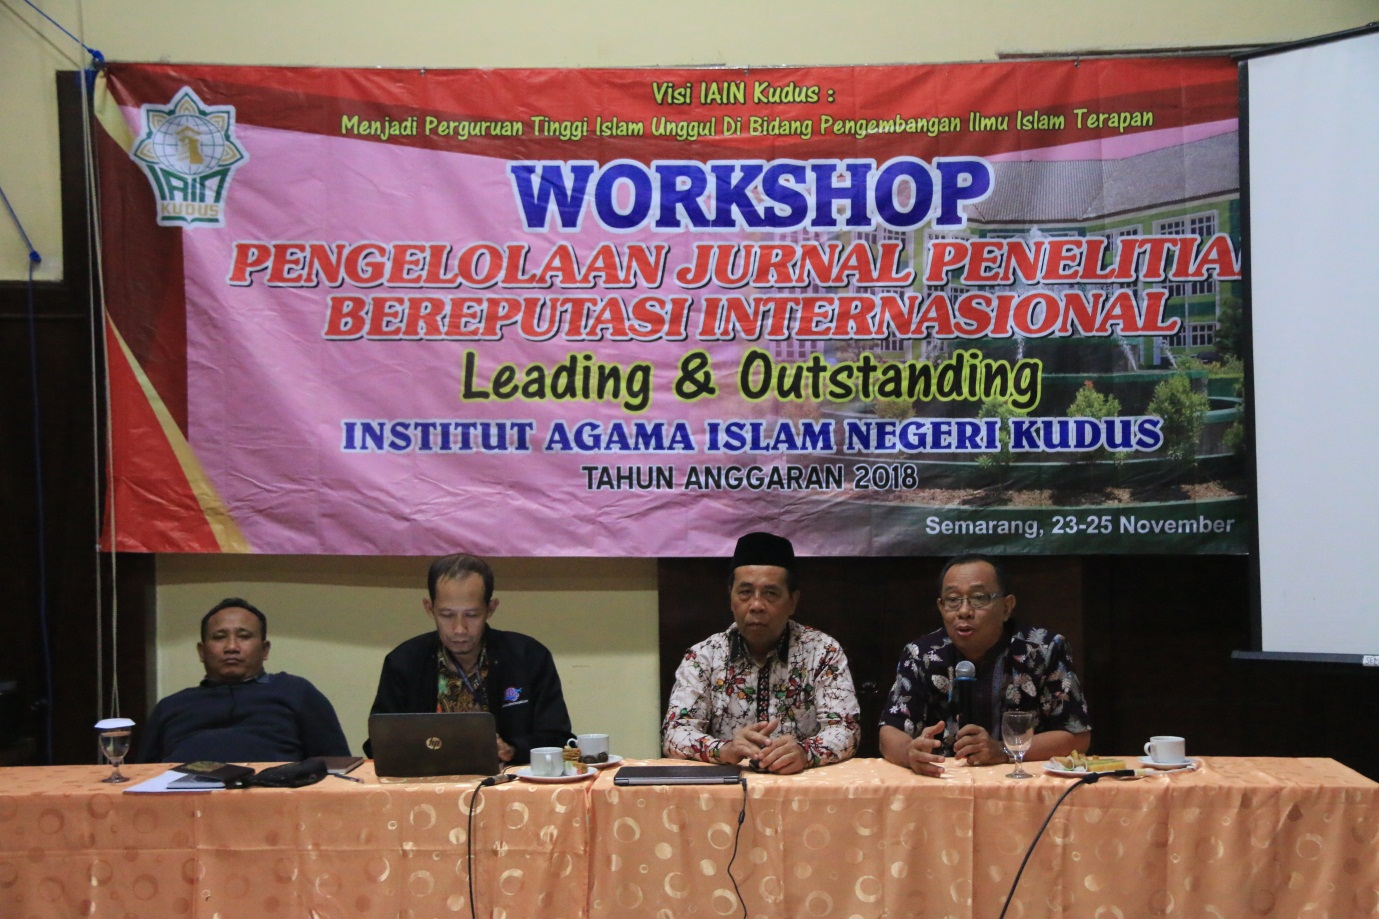 Workshop Pengelolaan Jurnal Penelitian Bereputasi International